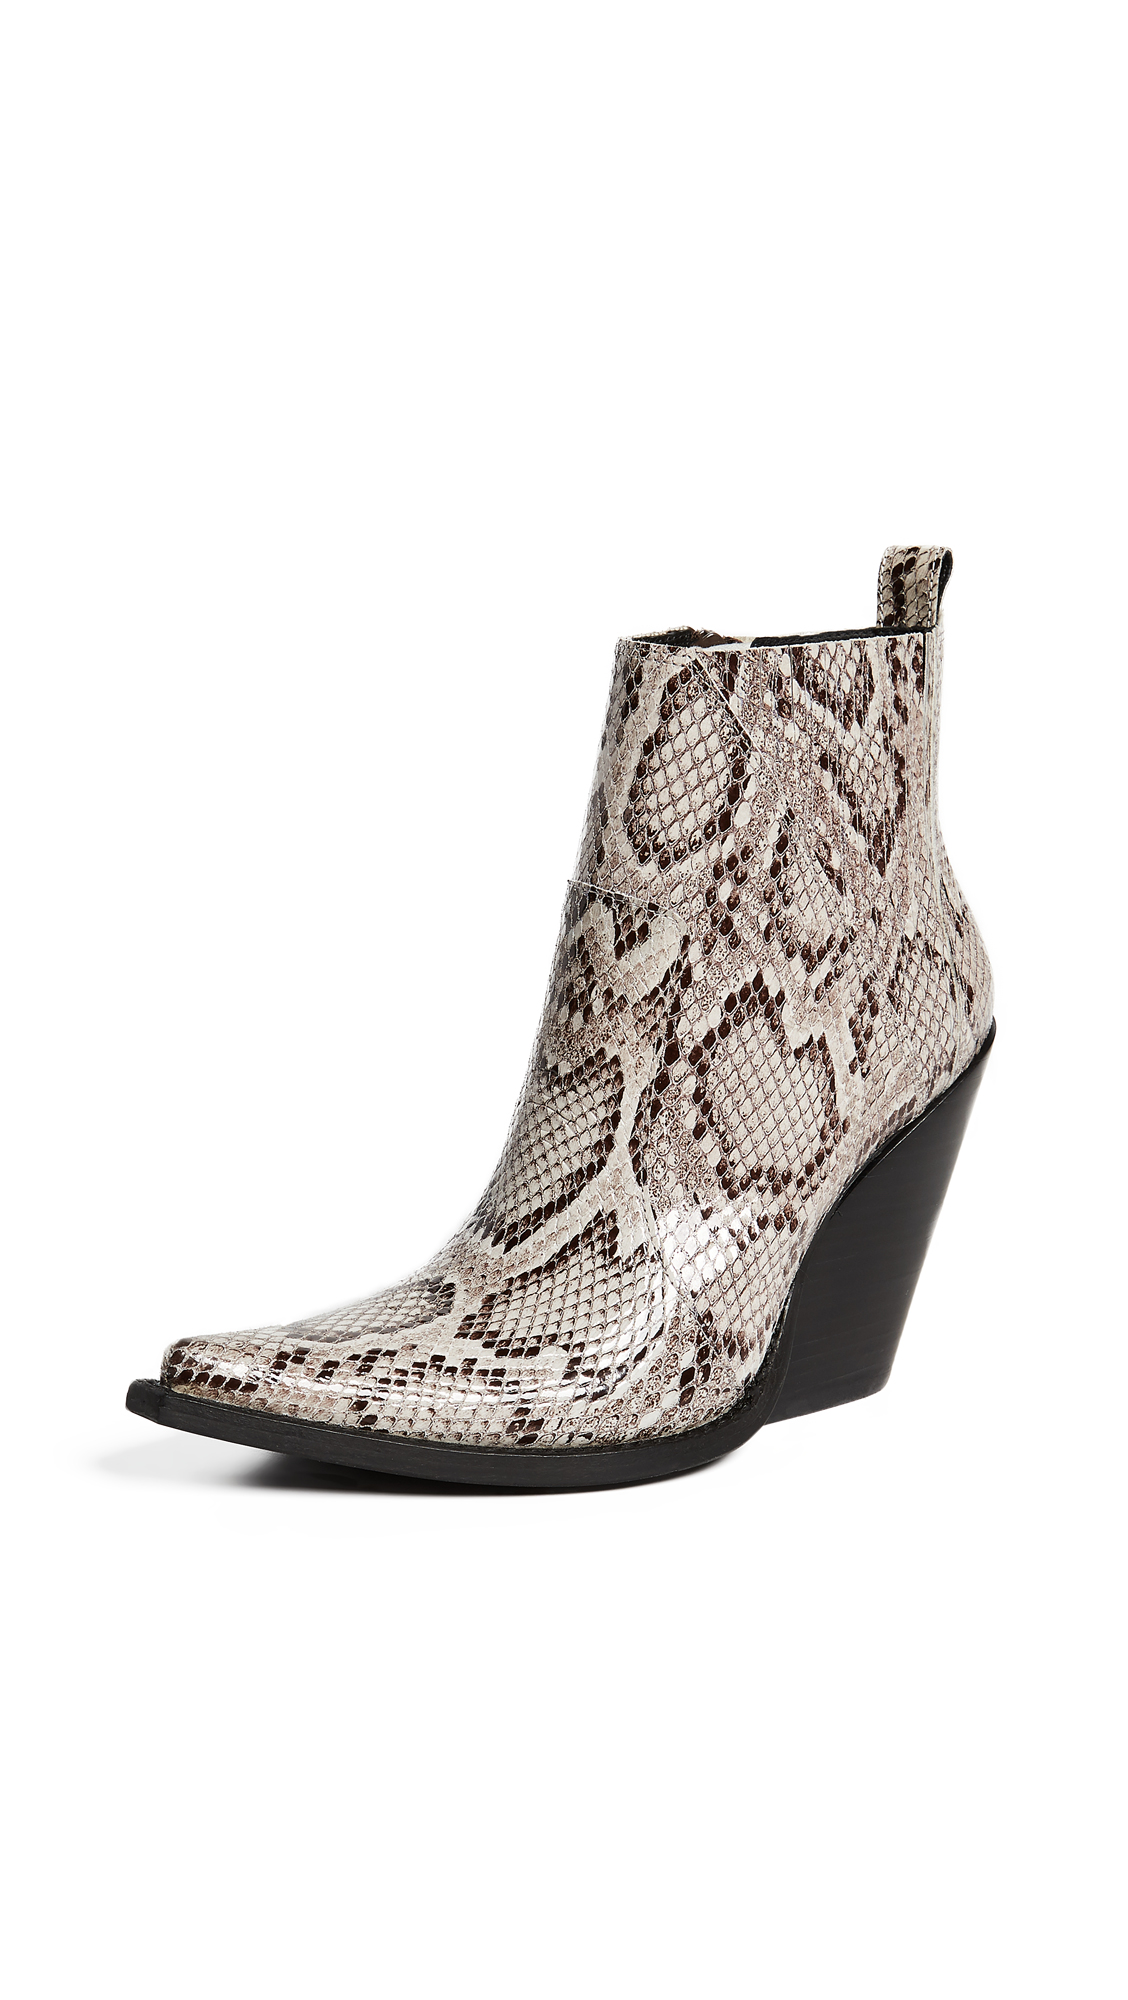 Jeffrey Campbell Homage Point Toe Booties - Beige Snake